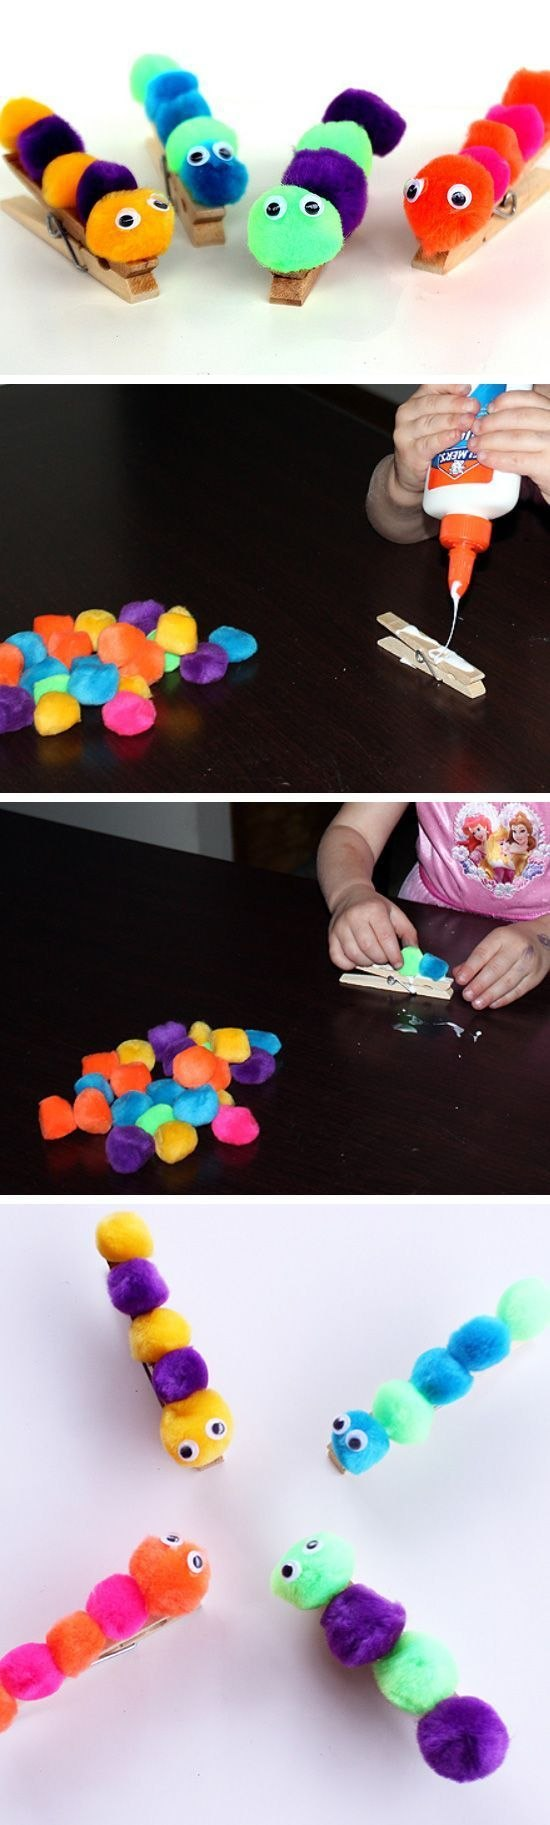 Caterpillar DIY Craft